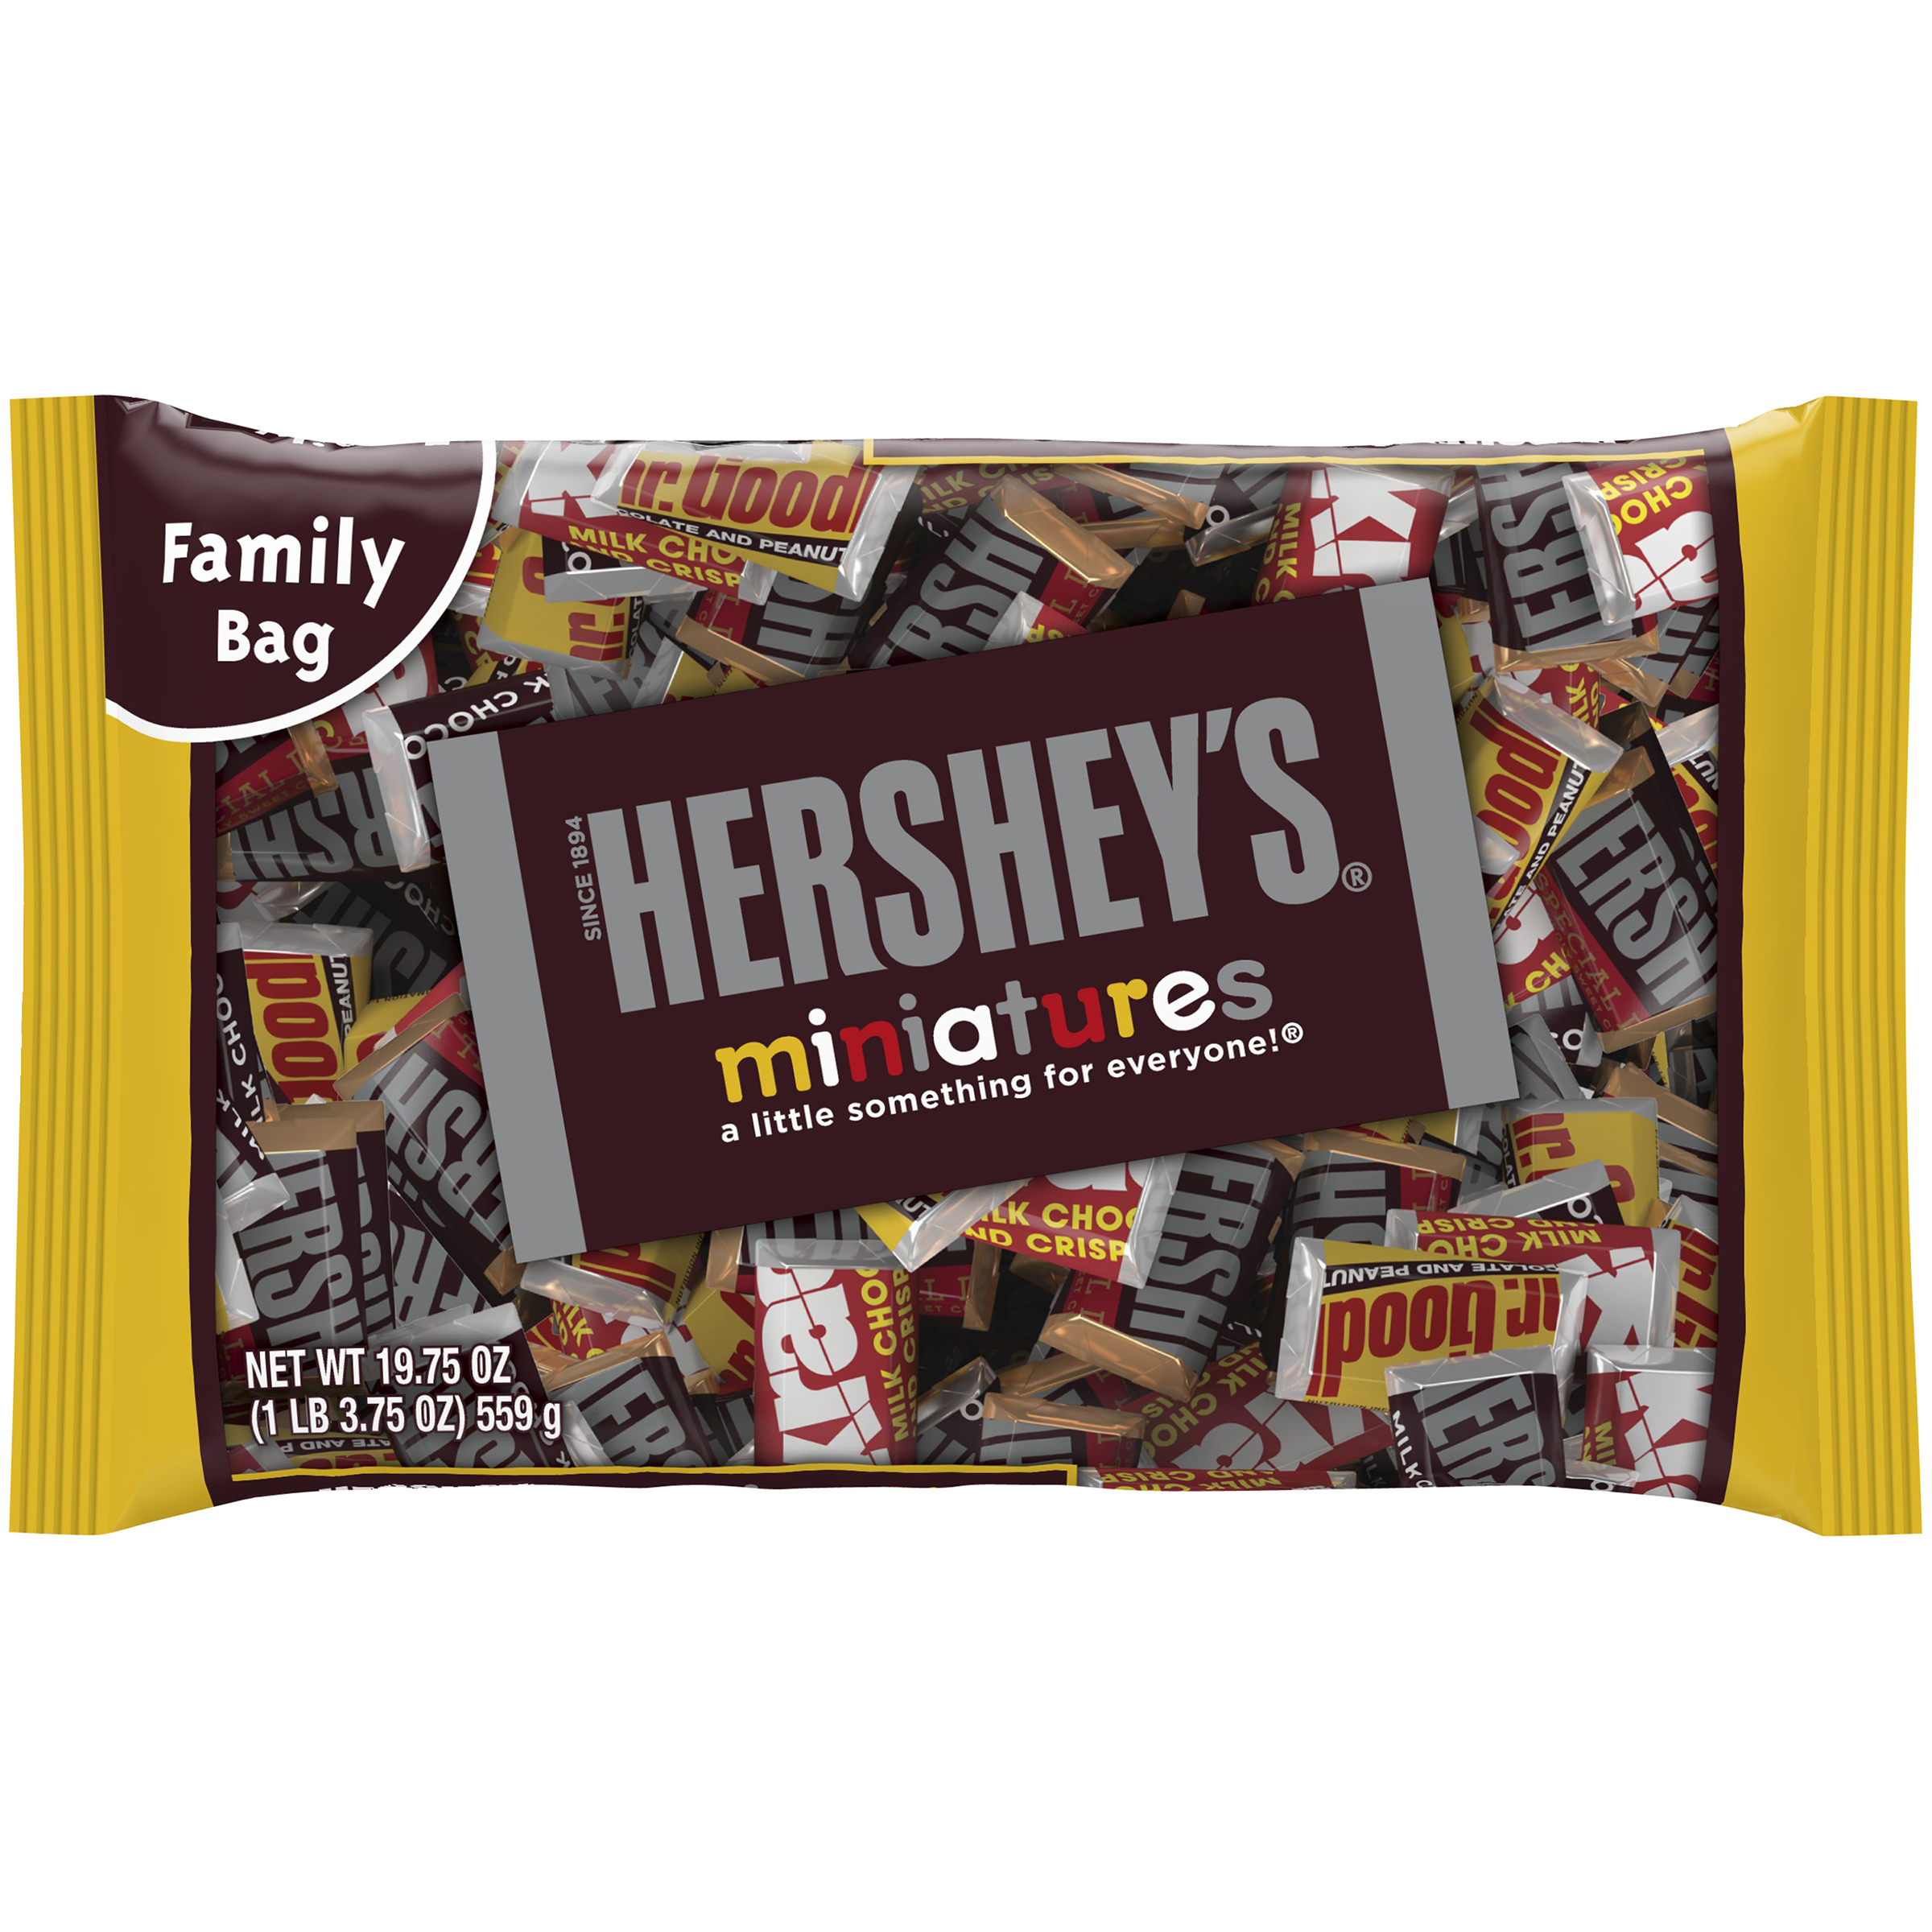 HERSHEY'S Miniatures Assortment, 19.75 oz